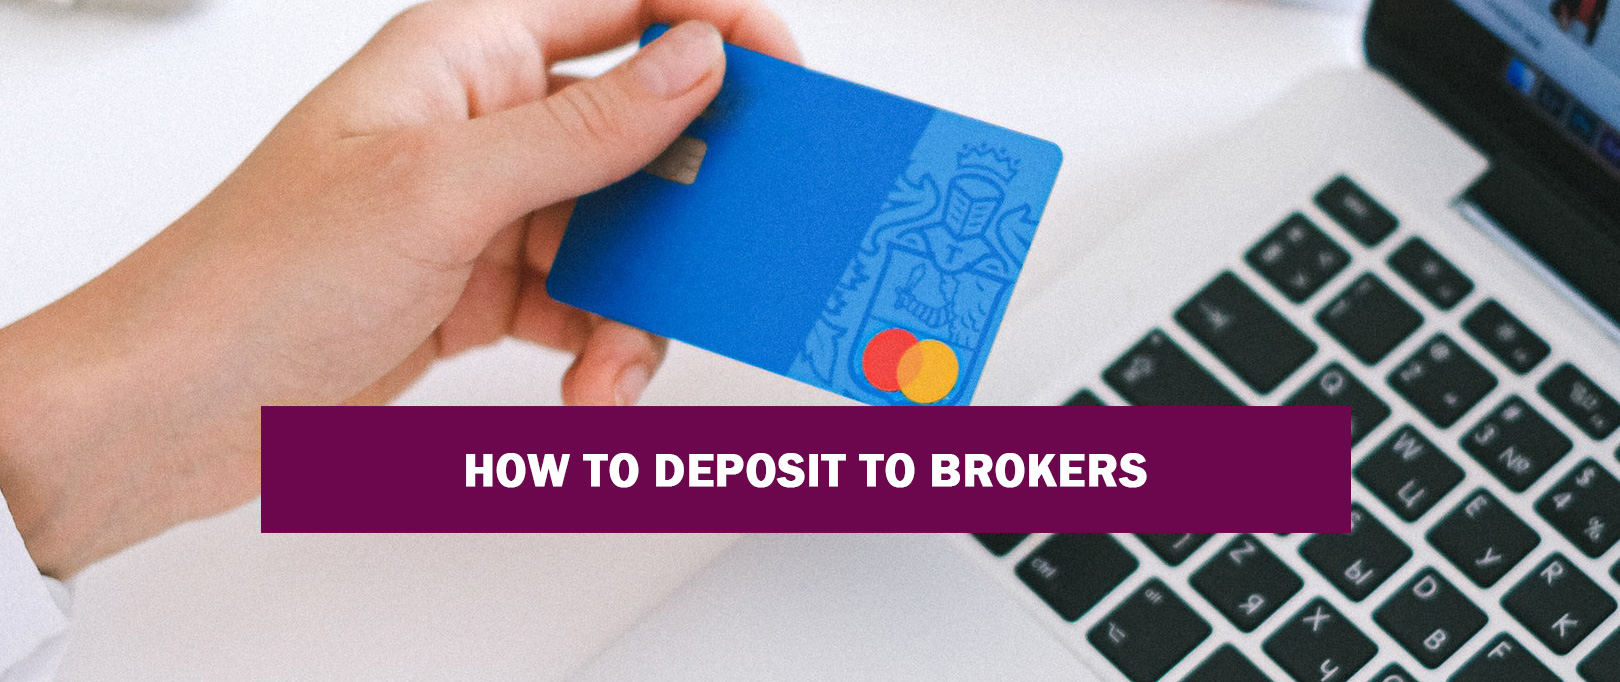 how to deposit to brokers skrill neteller from sri lanka